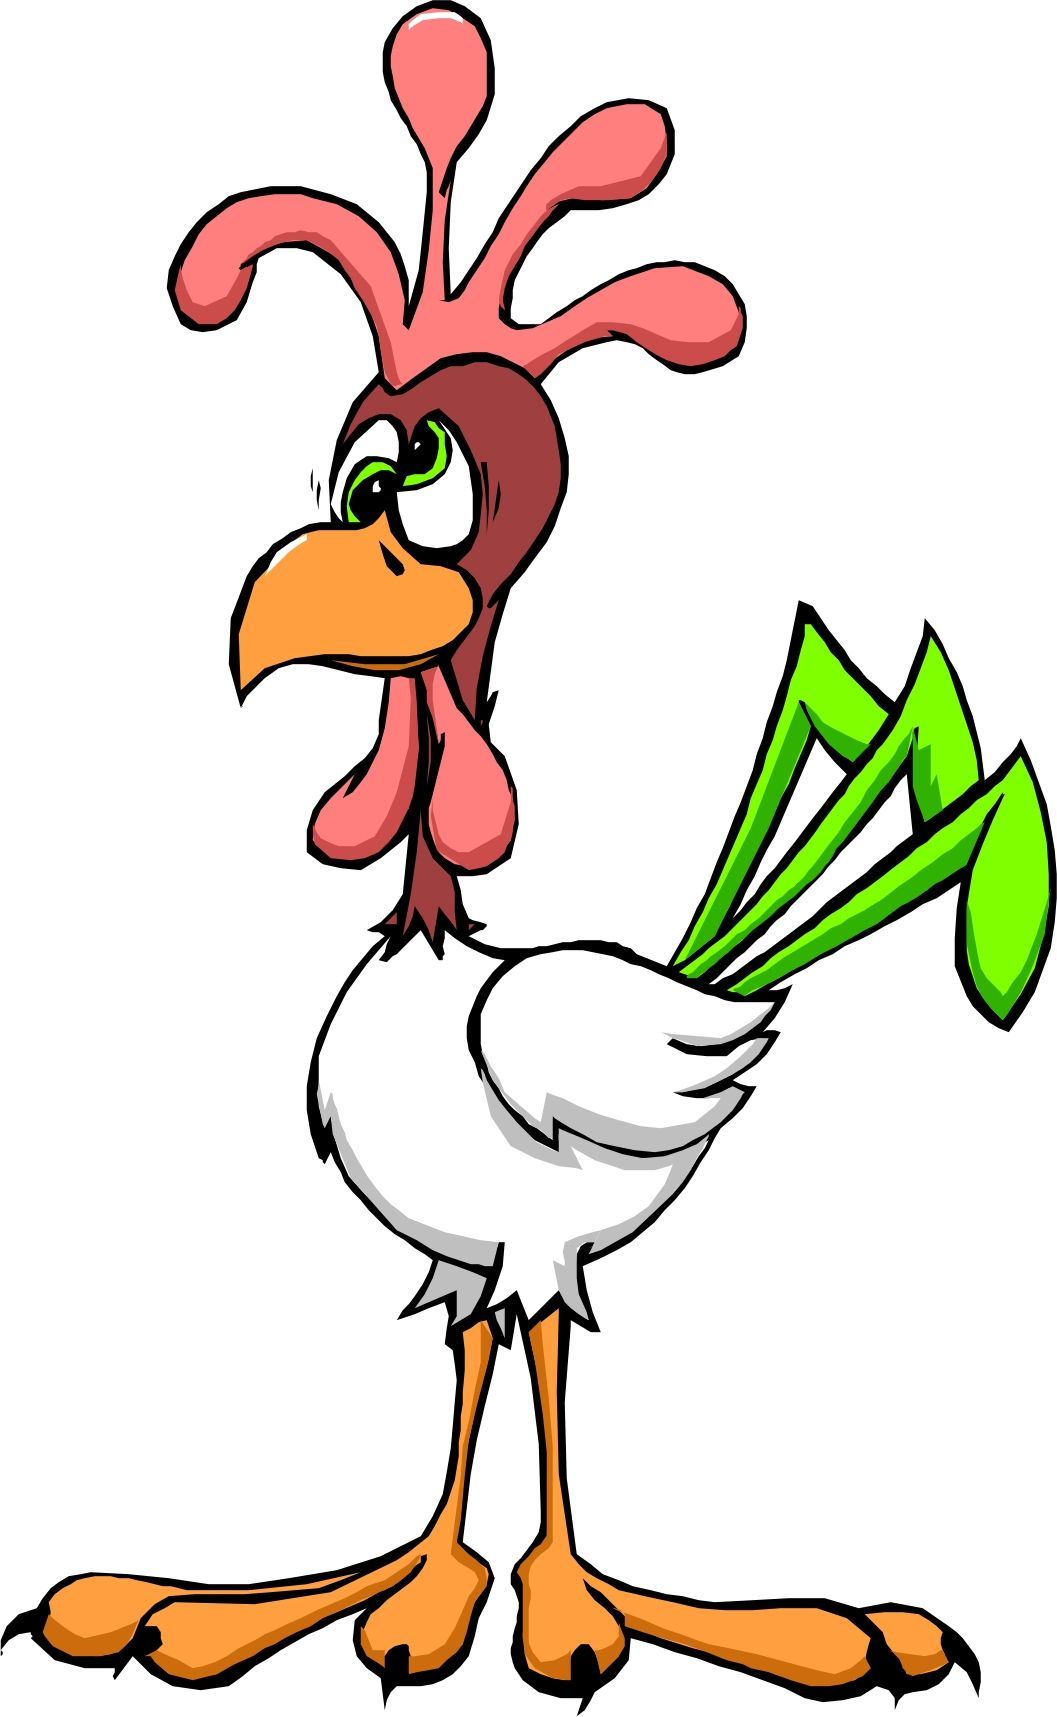 cartoon chickens clipart best backgrounds clipart images etc rh pinterest com free chicken pictures clip art chicken wings pictures clip art